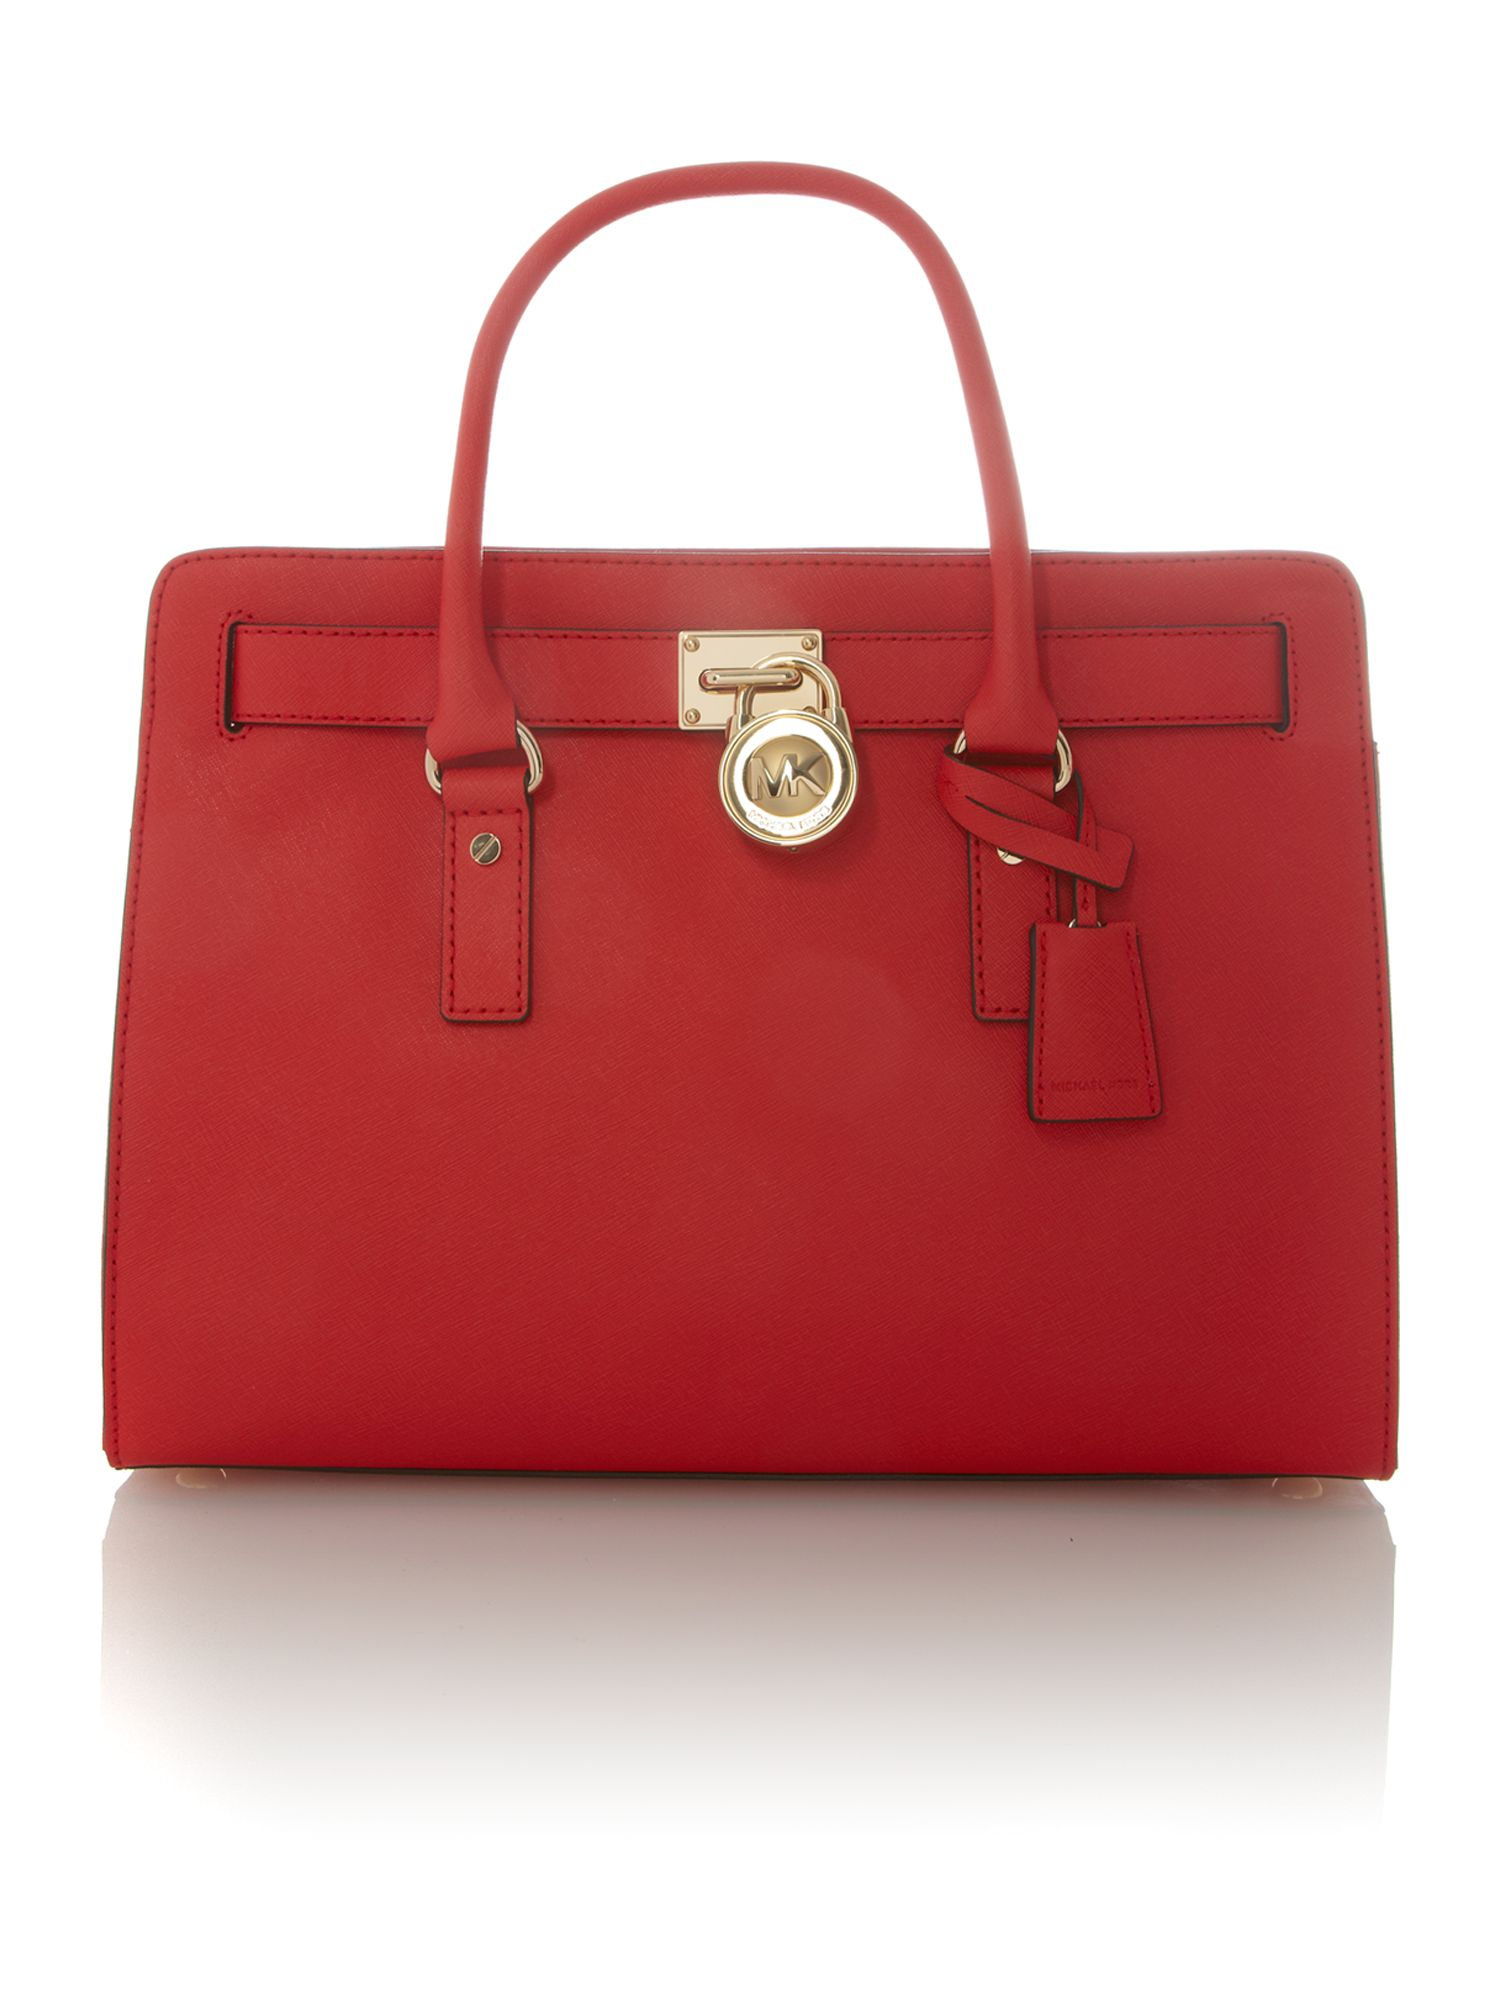 Hamilton large red ew tote xbody bag